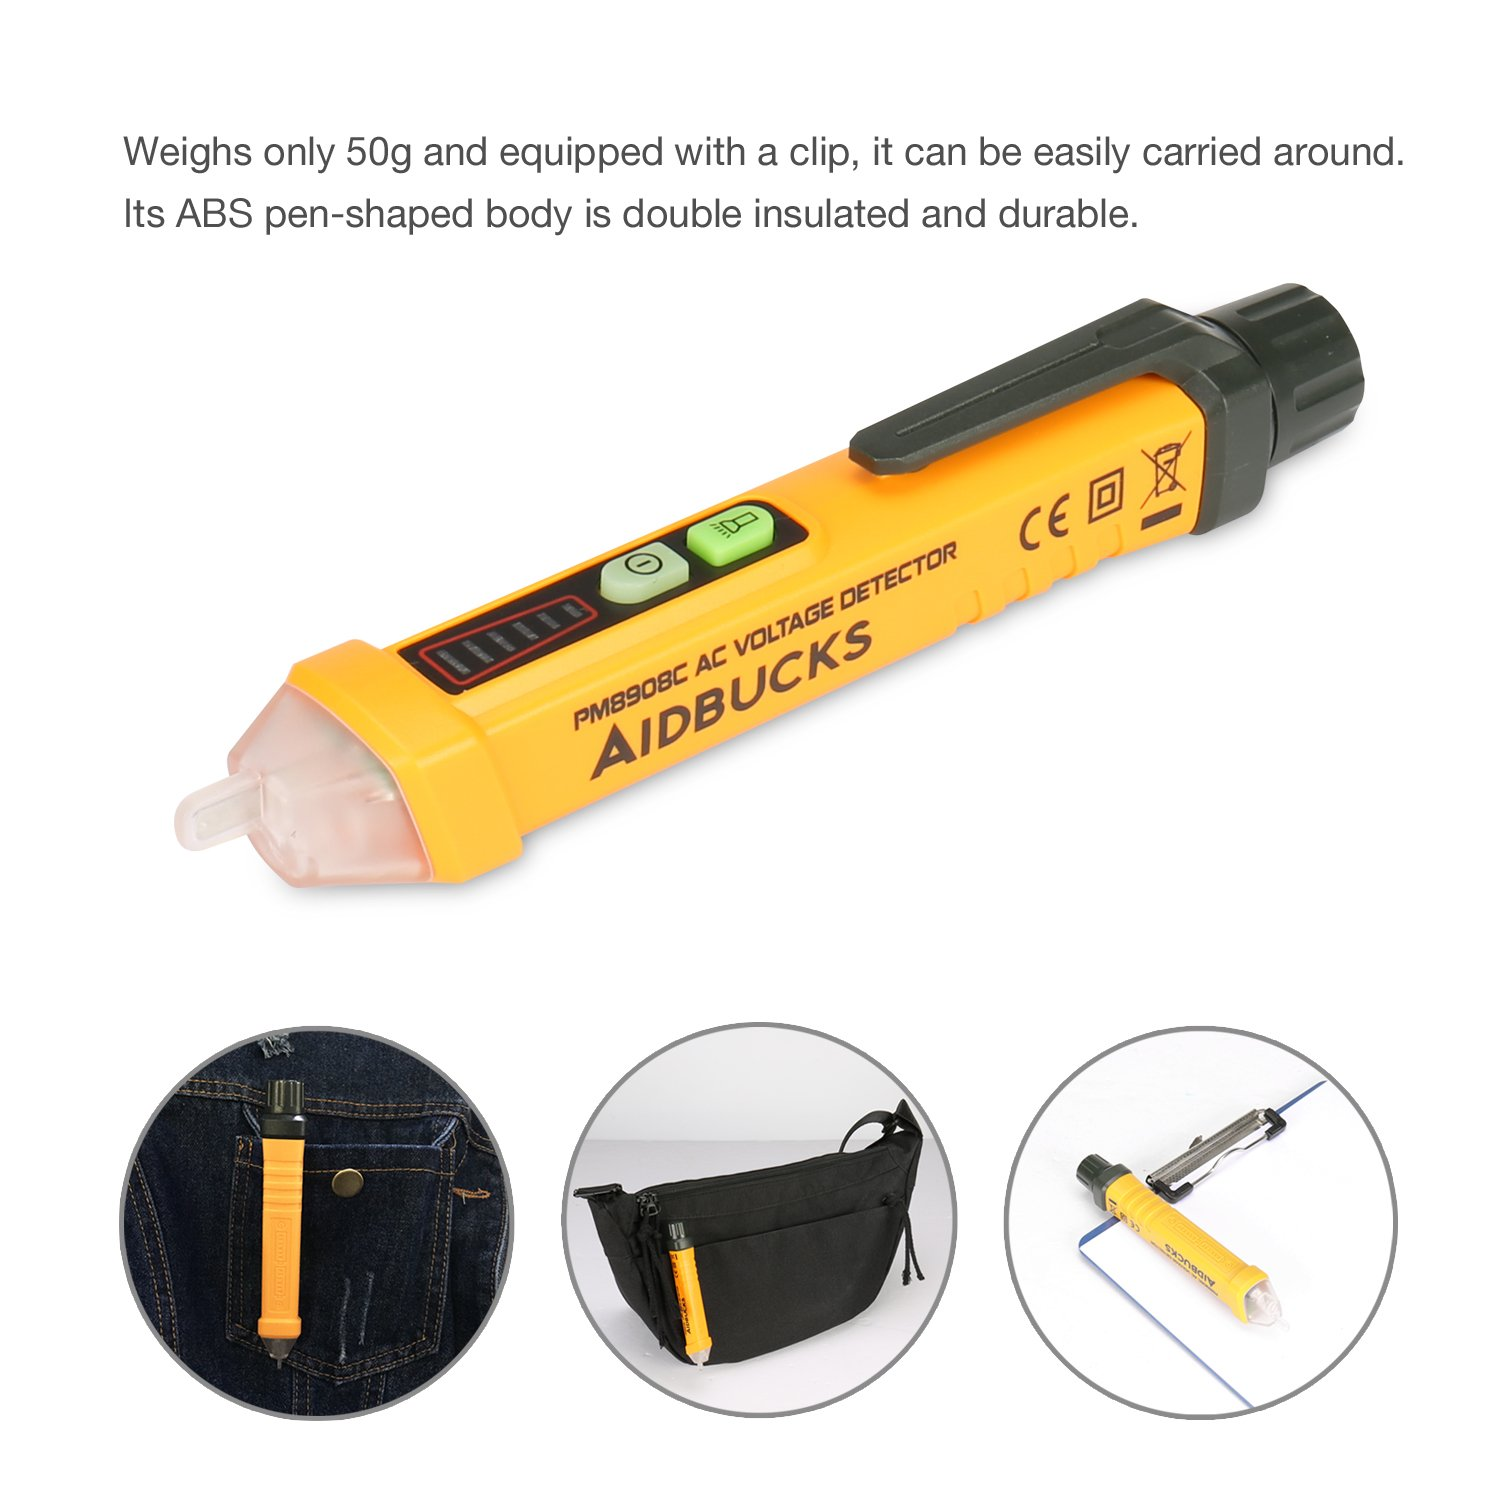 Voltage Tester Aidbucks Pm8908c Non Contact Digital Multimeter Precision Peak Detector With A Long Memory Time Circuit Testers Detector12 1000v Ac Volt Current Meter Led Flashlight